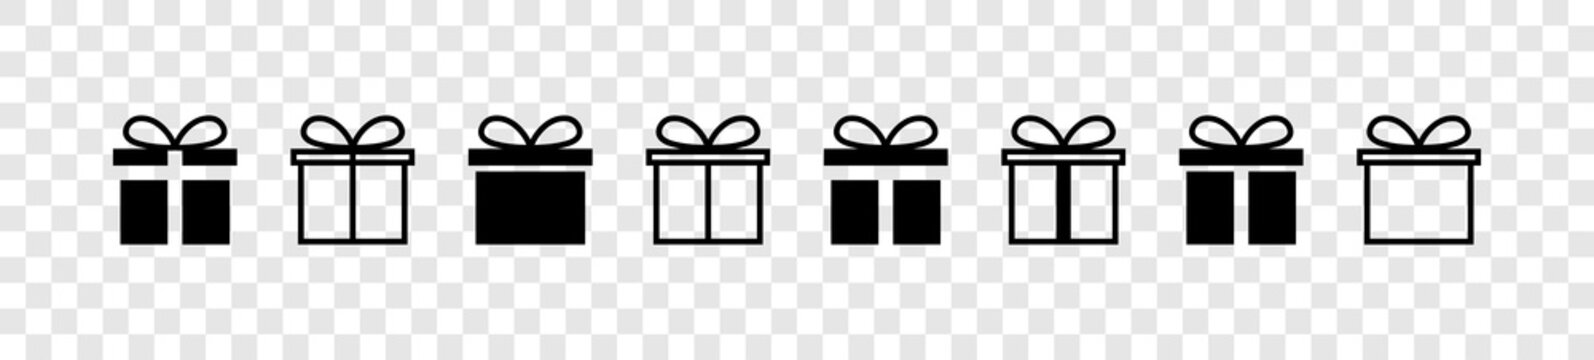 Gift. Gift box collection with ribbons. Christmas gift icons, isolated. Surprise box vector icons in a row. Vector illustration